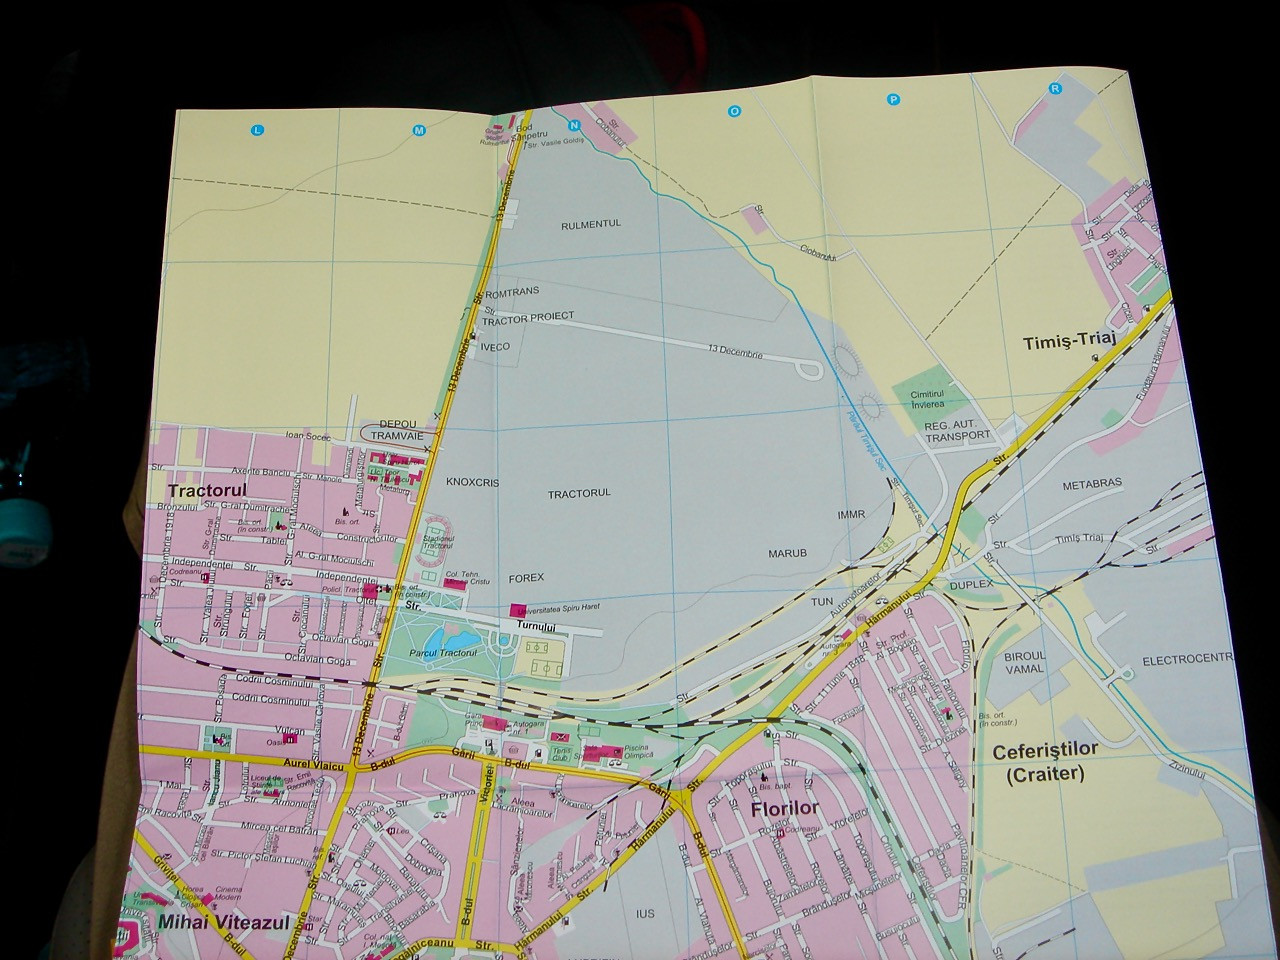 City Map with Blighted Area